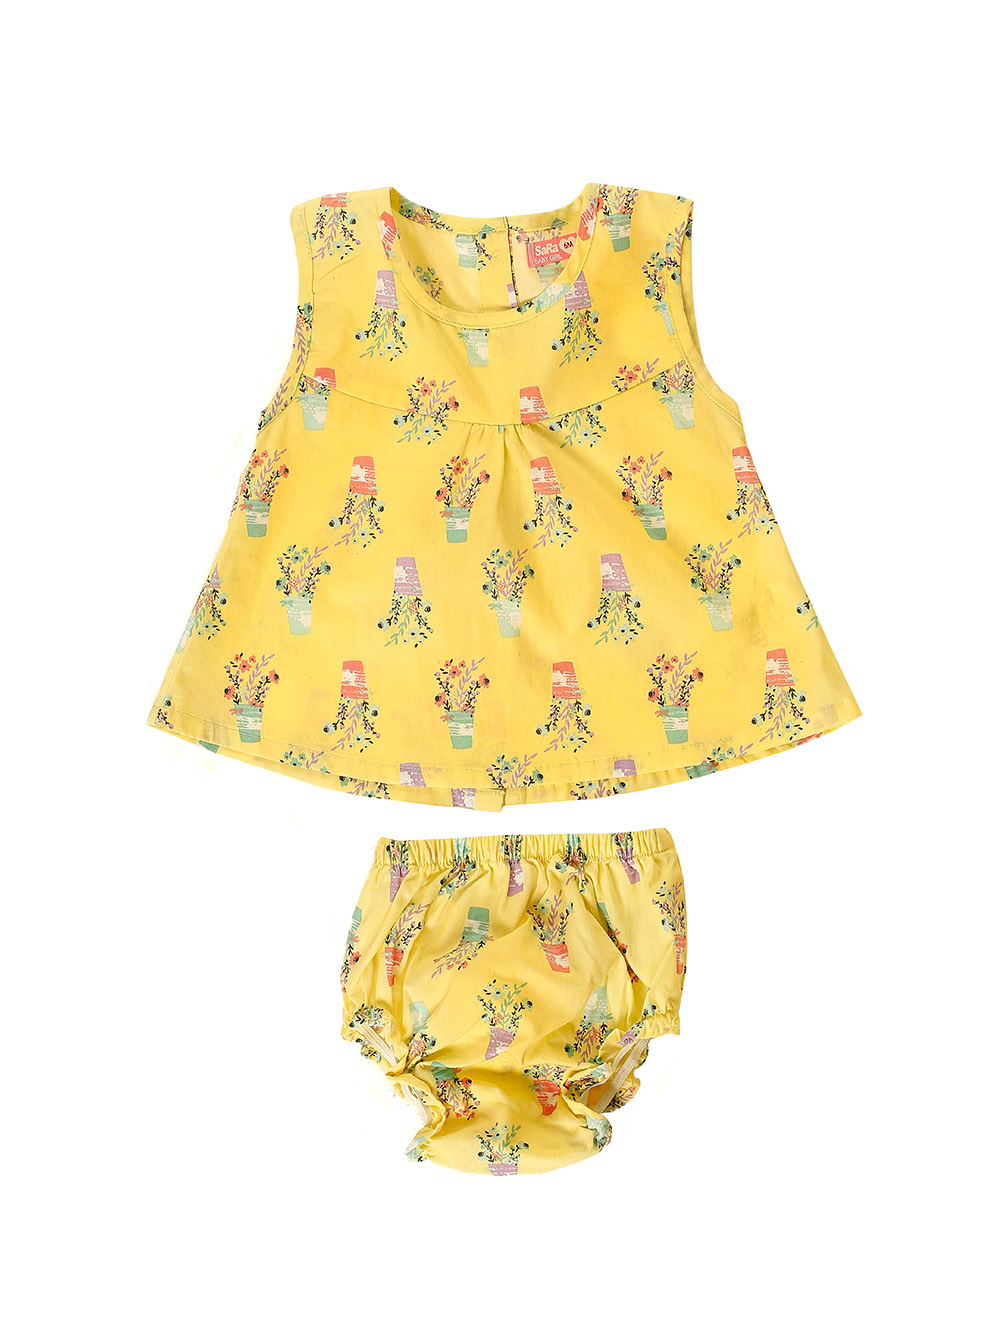 GIRL'S FROCK & PANT